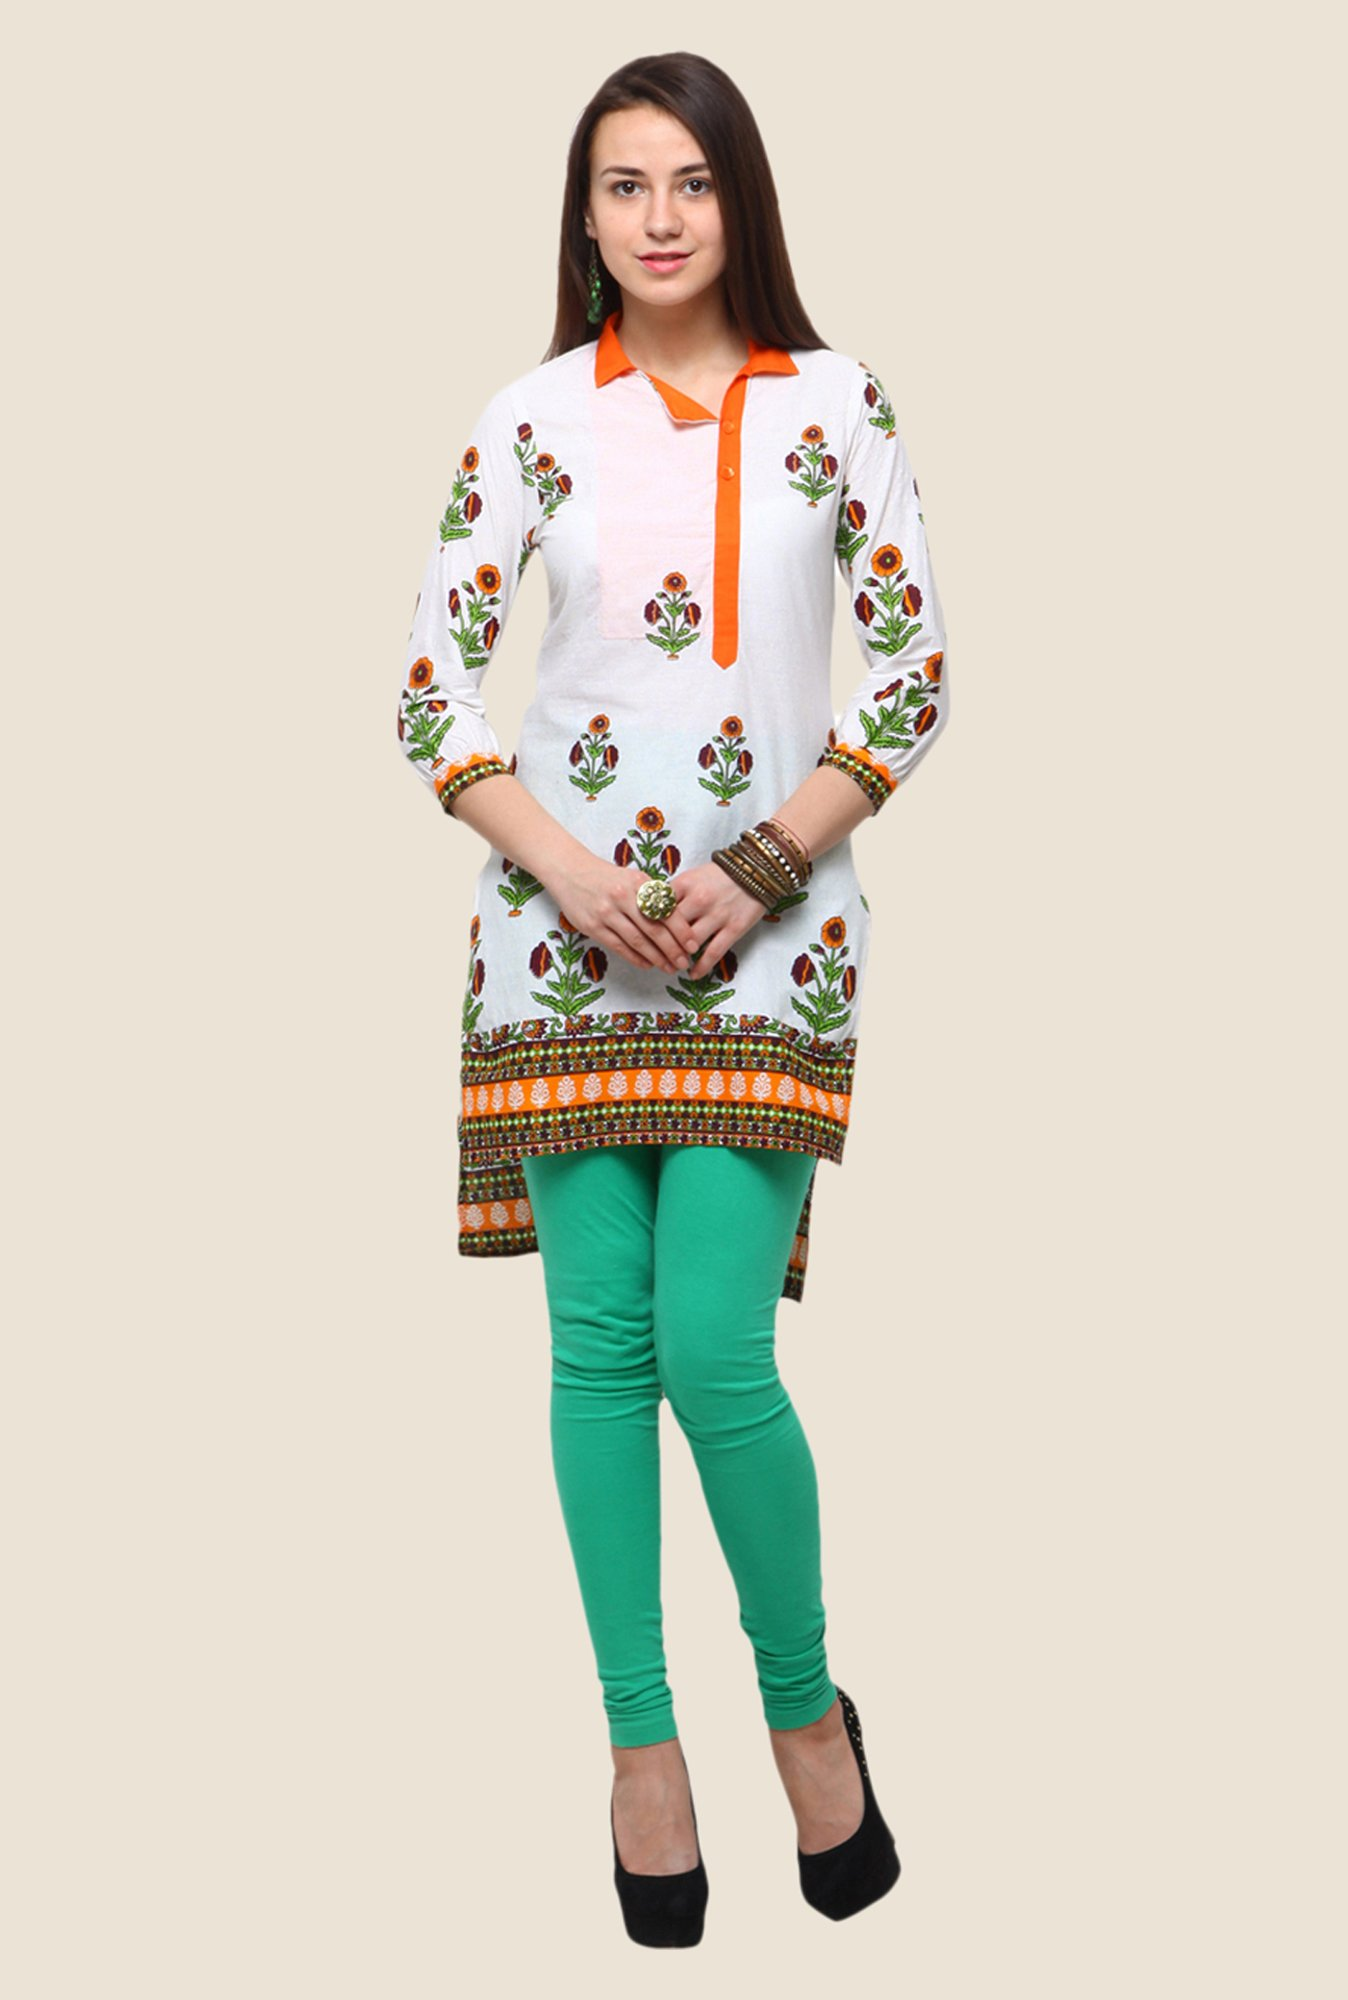 Yepme Claudia White & Orange Floral Print Kurti